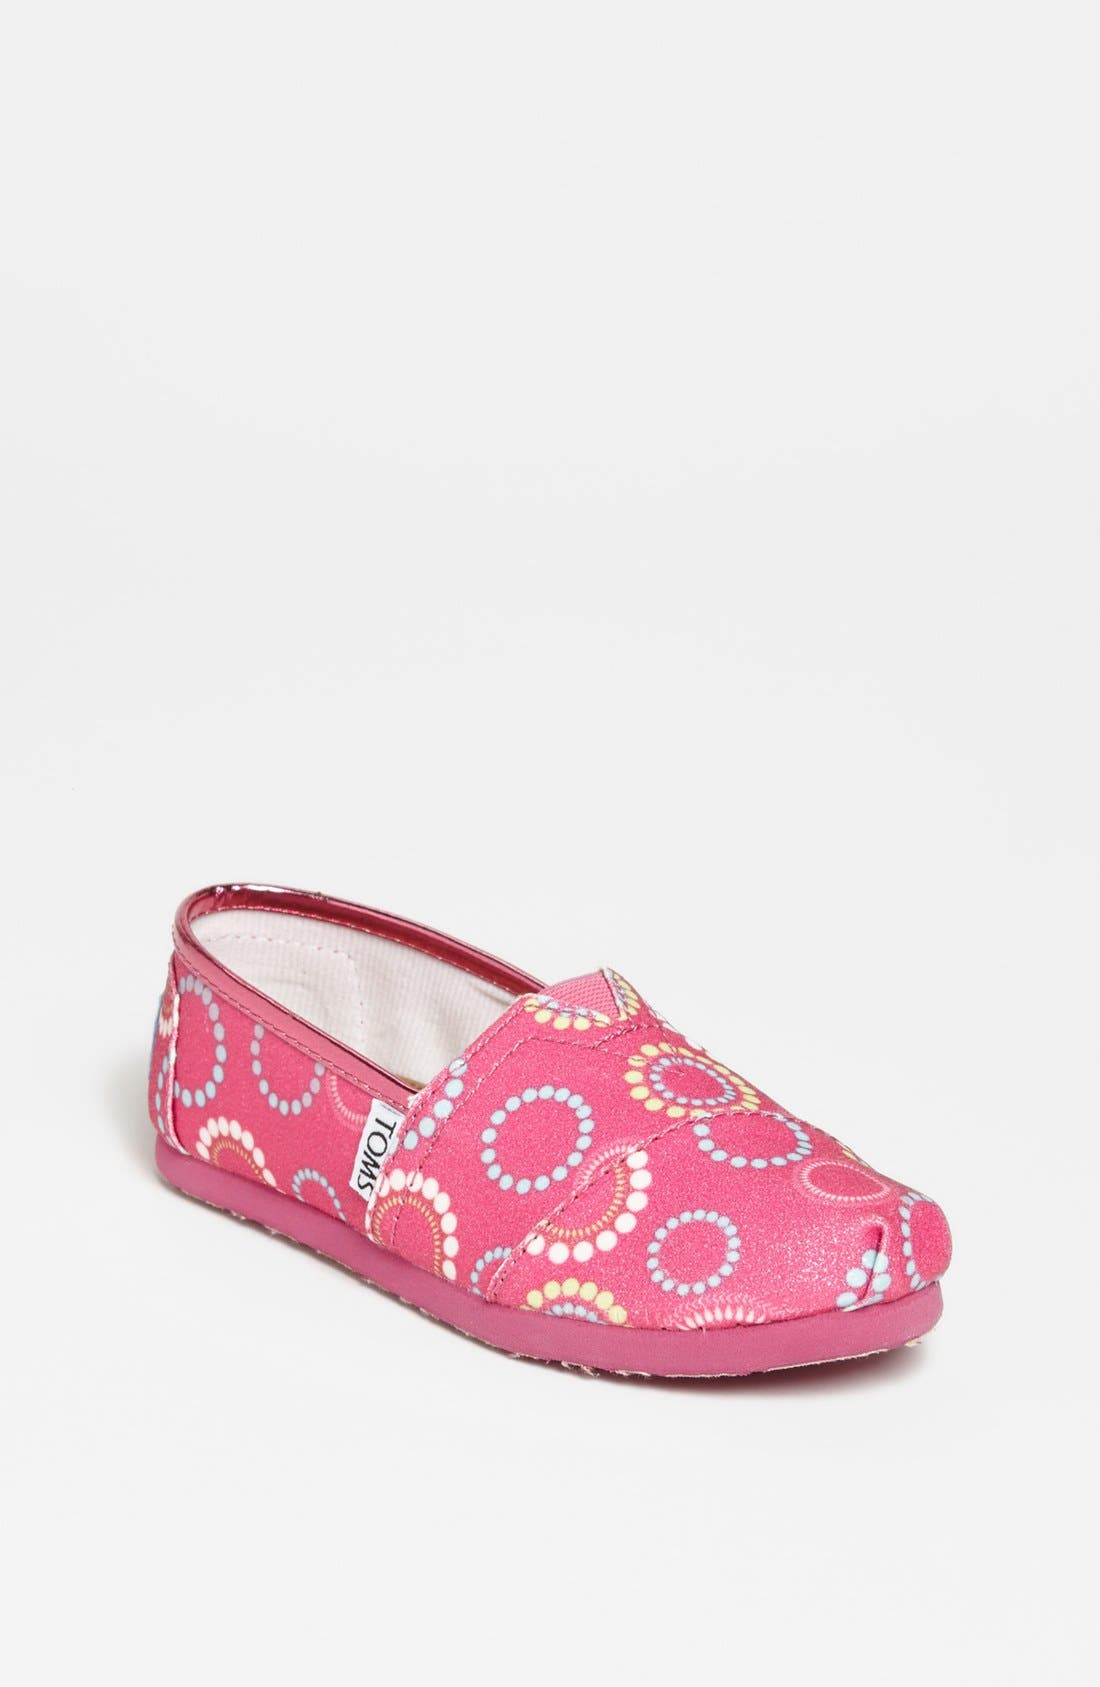 Alternate Image 1 Selected - TOMS 'Classic Youth - Circles Glitter' Slip-On (Toddler, Little Kid & Big Kid)